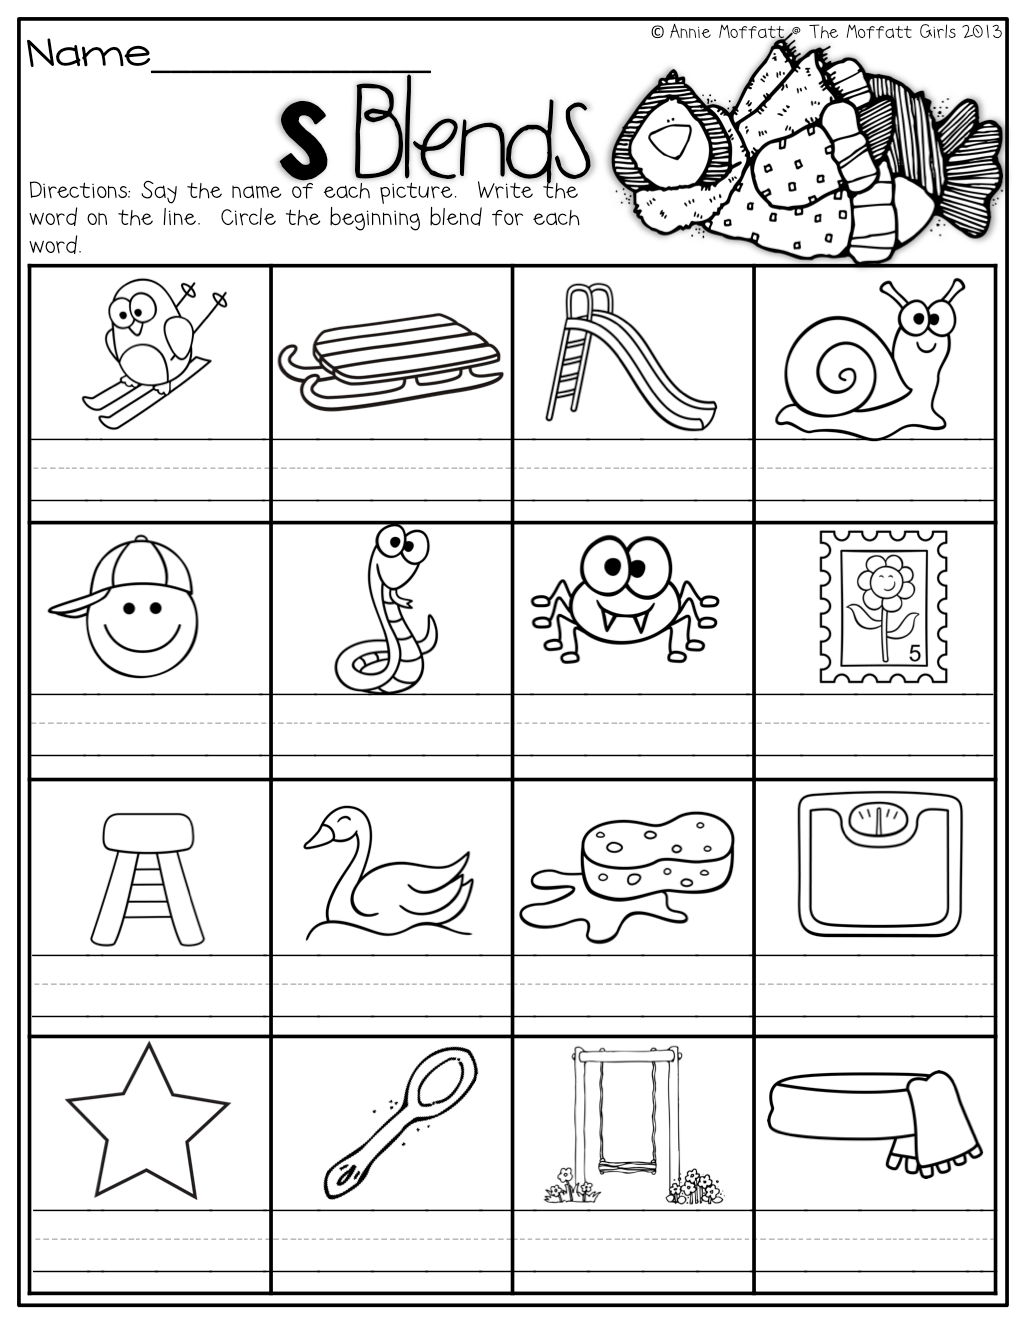 Pictures S Blend Worksheets